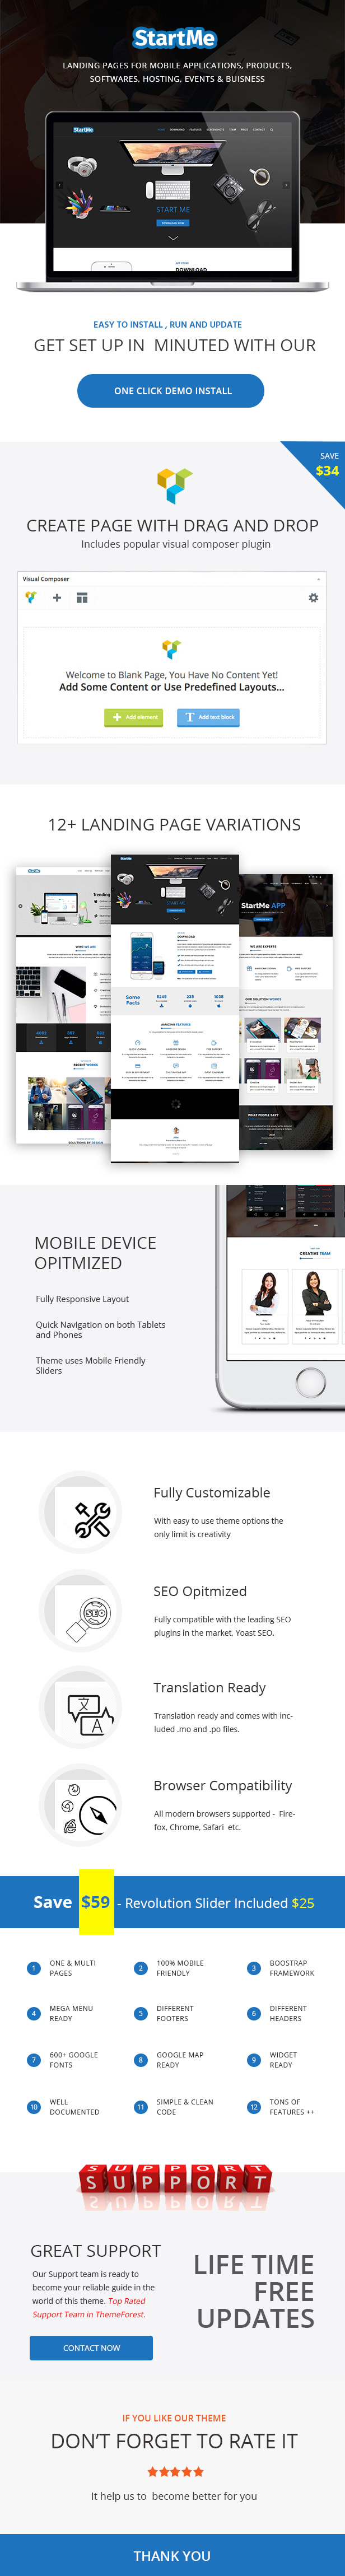 Startme - Landing pages for Mobile App, Products, Software, Hosting & Business (Software) Startme - Landing pages for Mobile App, Products, Software, Hosting & Business (Software) startme front